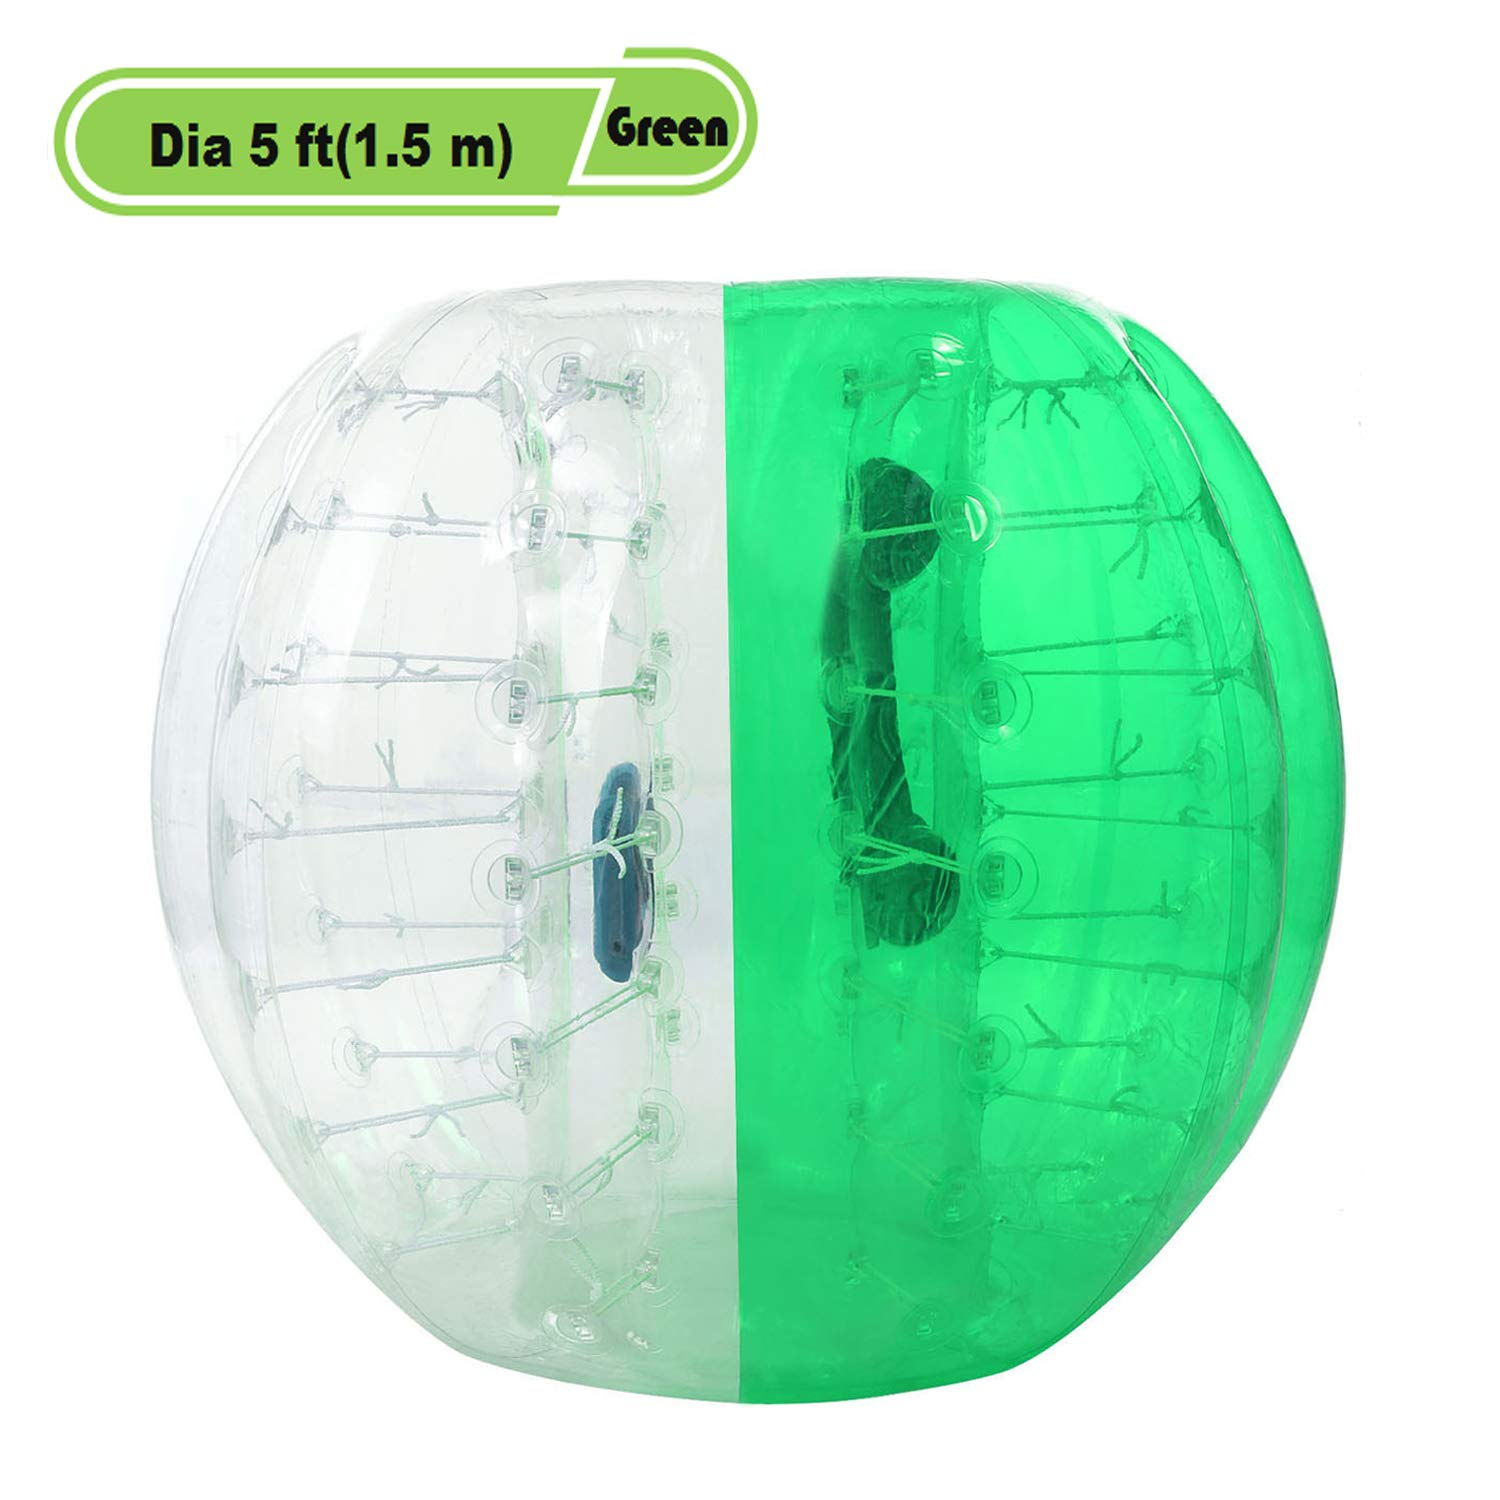 Yiilove Inflatable Bumper Ball 4 ft/5 ft(1.2/1.5 m) Bubble Soccer Ball Transparent Material Human Knocker Ballfor Adults and Kids (Dia 5 ft(1.5 m)-Green)